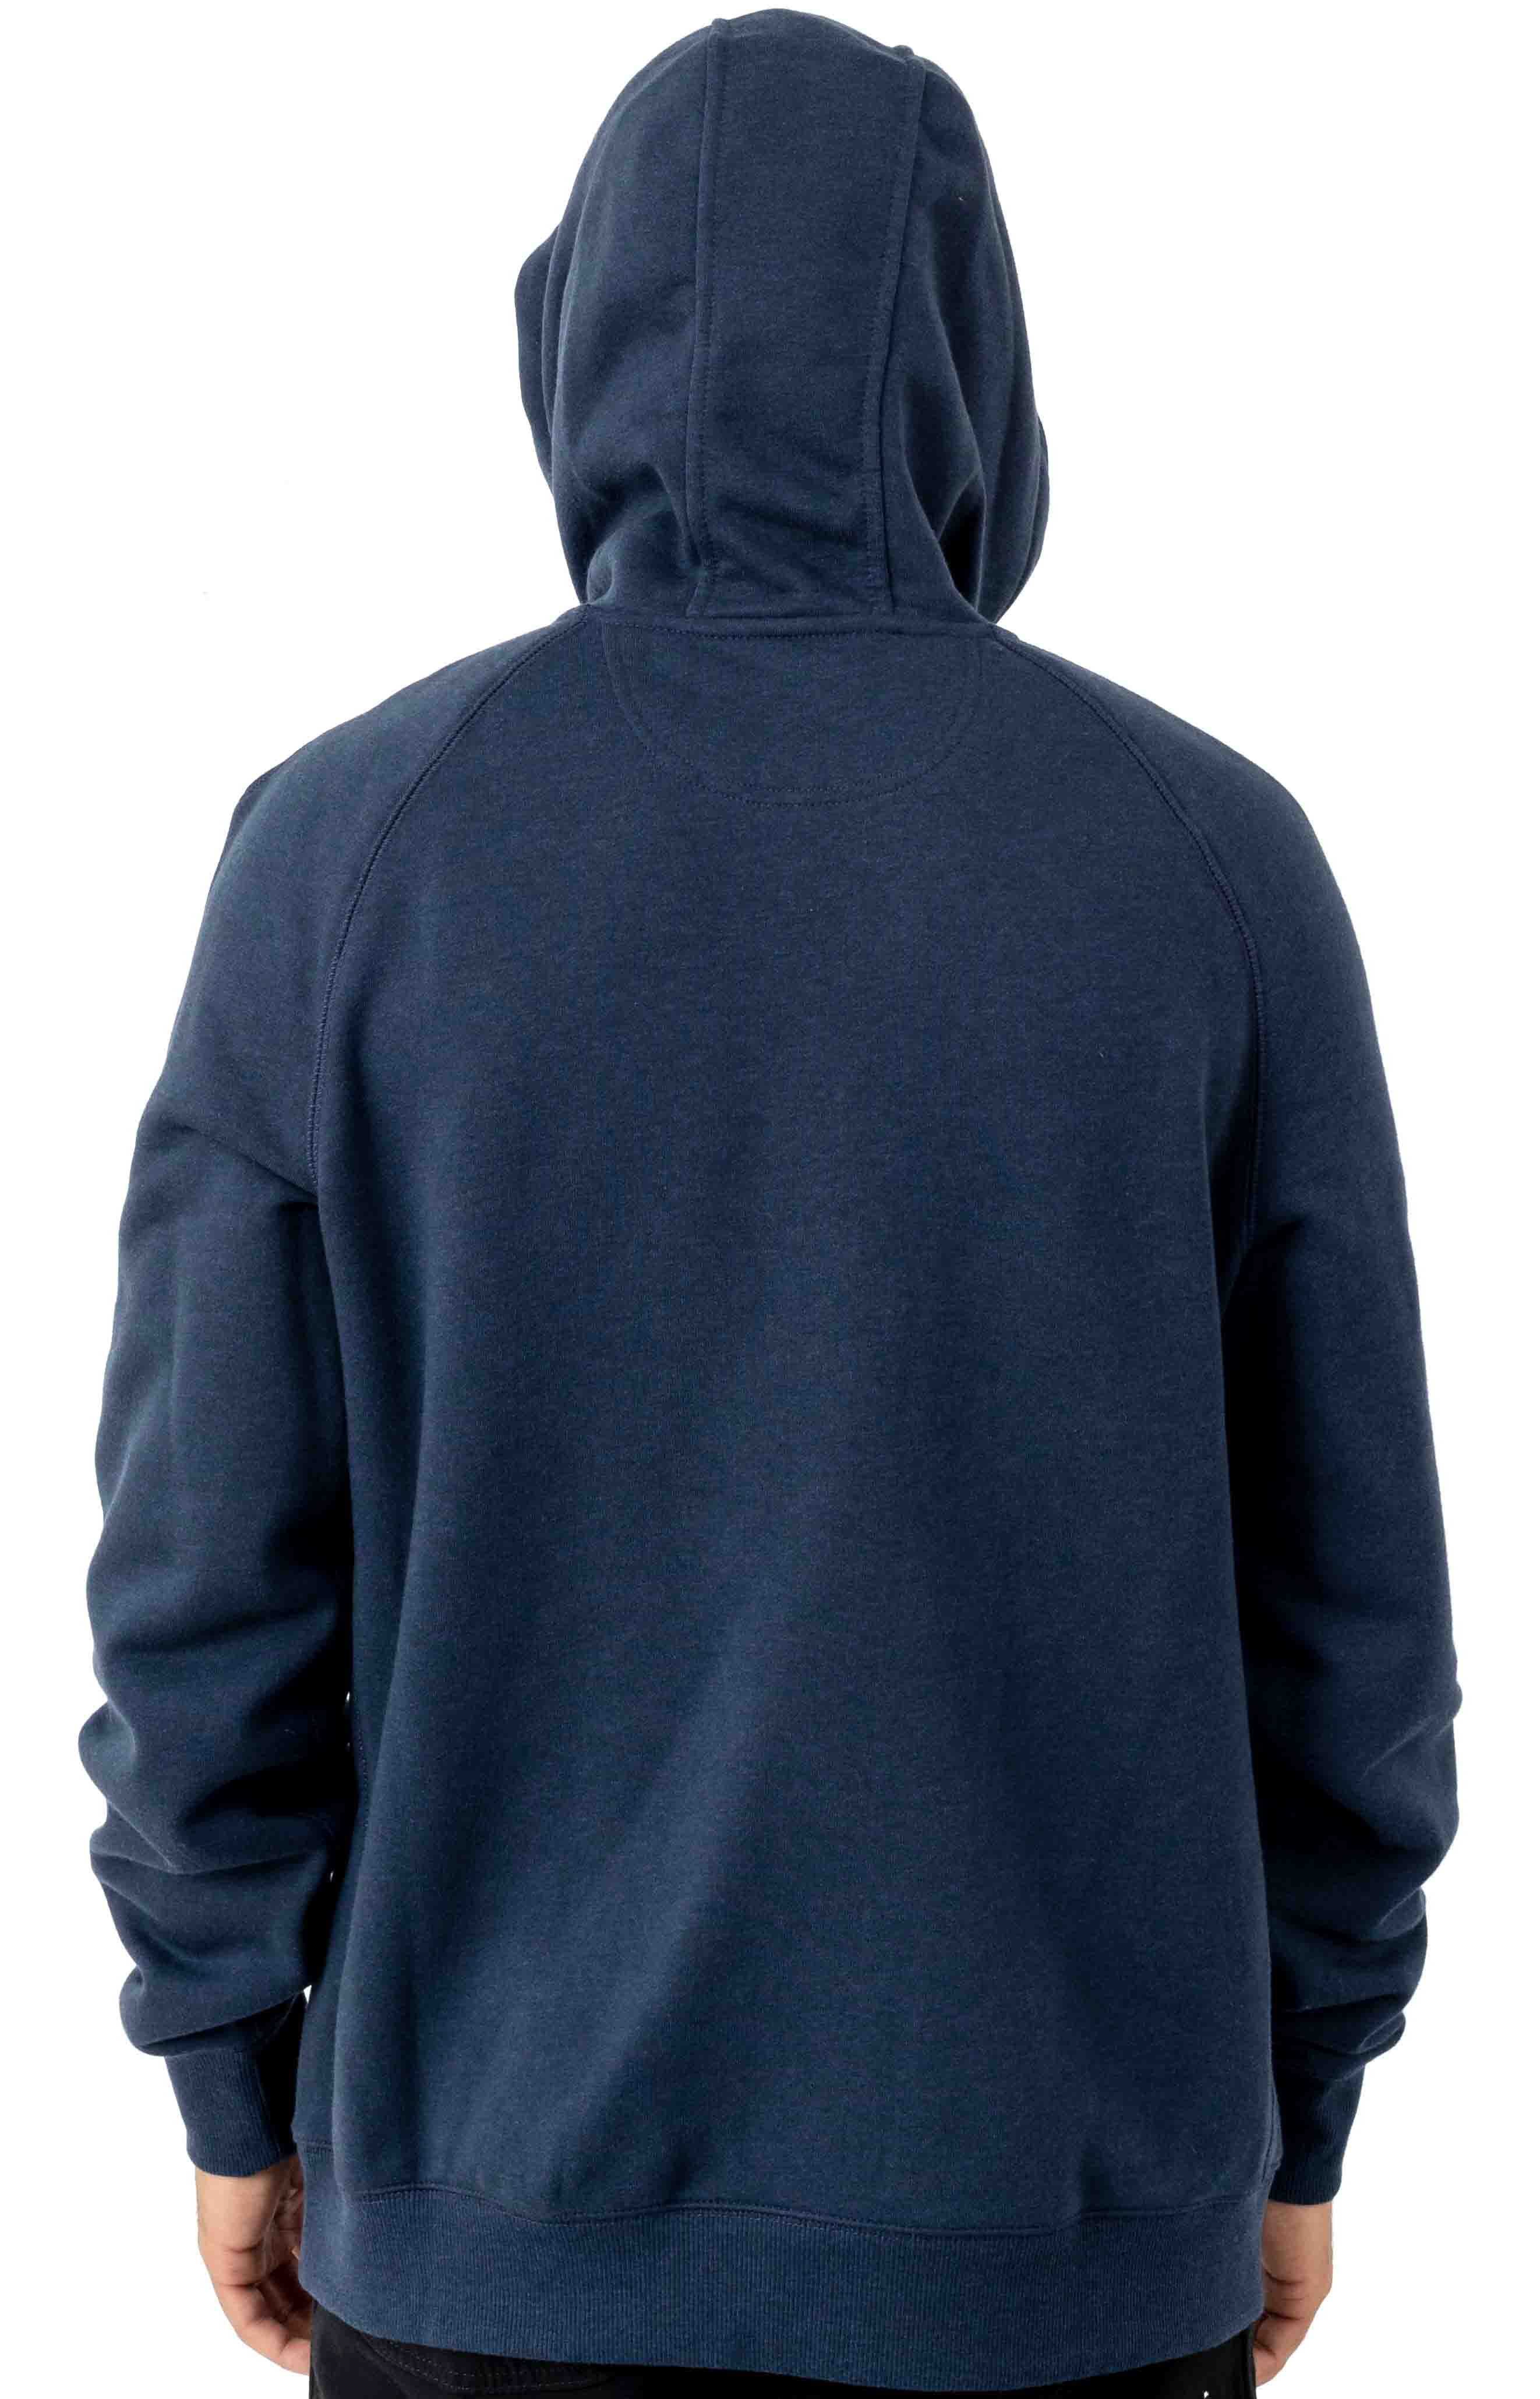 (103873) Force Delmont Signature Graphic Pullover Hoodie - Navy Heather  3